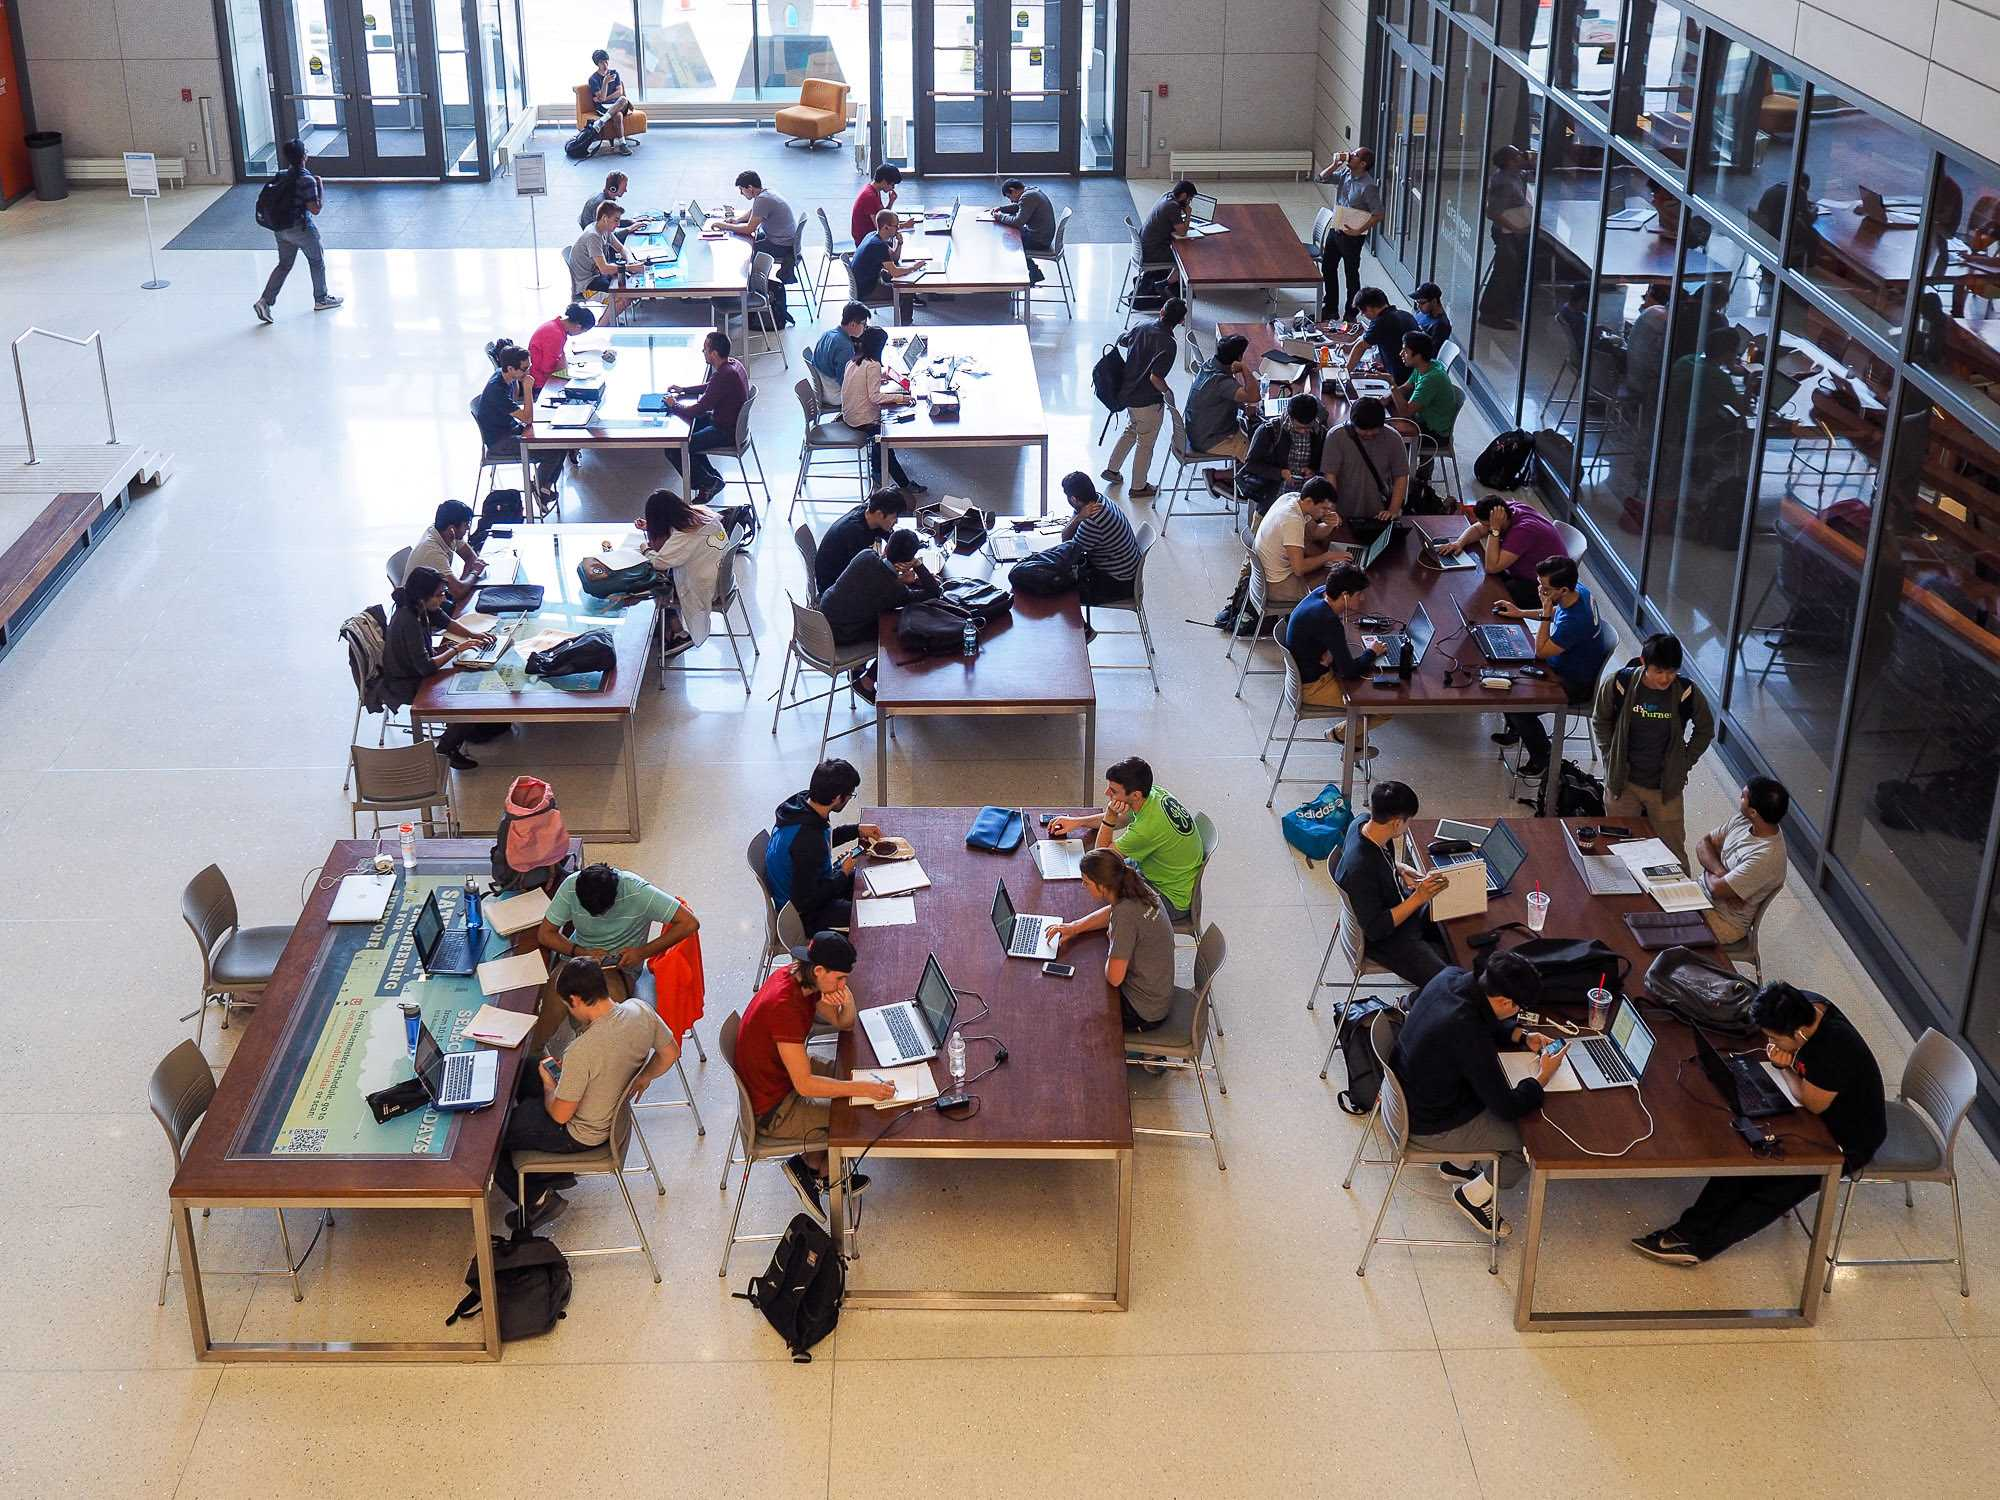 Students study in the Electrical and Computer Engineering Building in Champaign on Oct. 4.